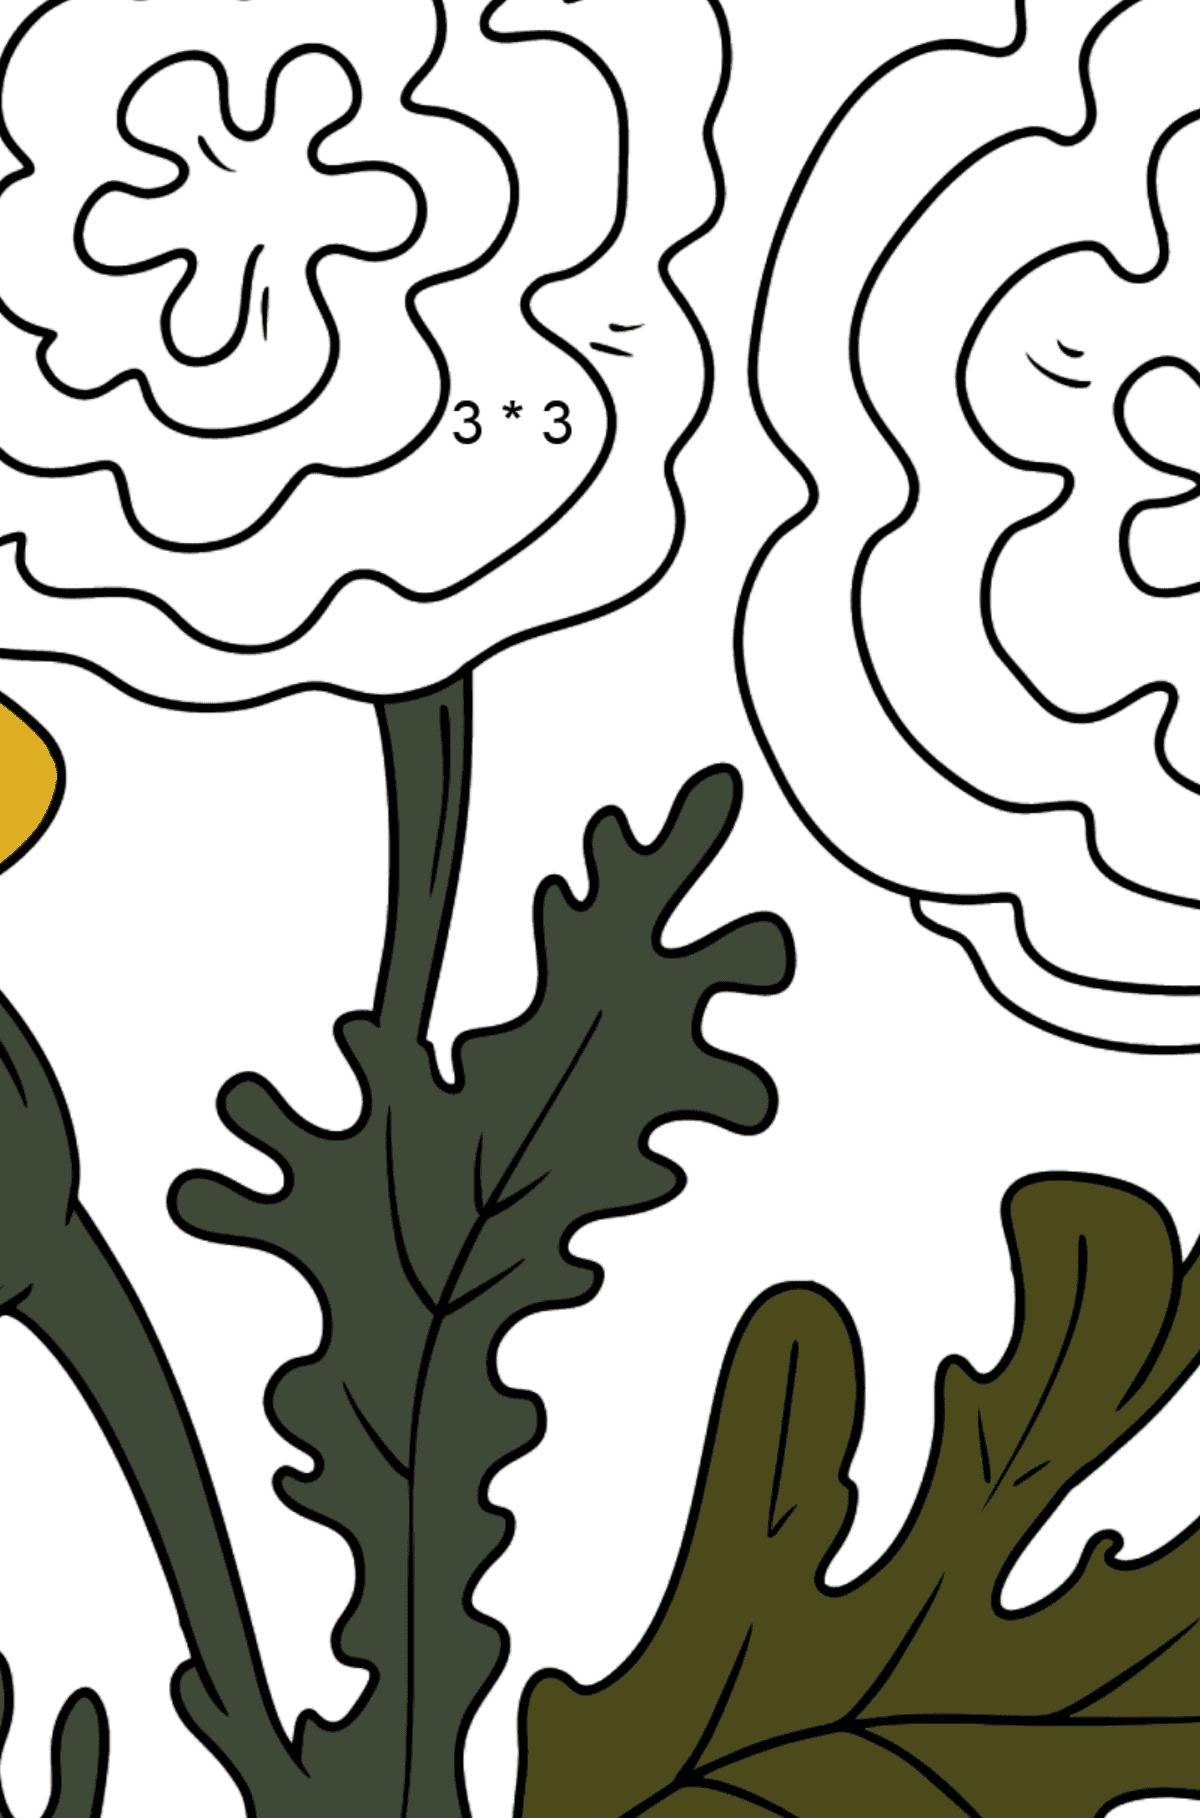 Coloring Page - Autumn flowers - Math Coloring - Multiplication for Kids